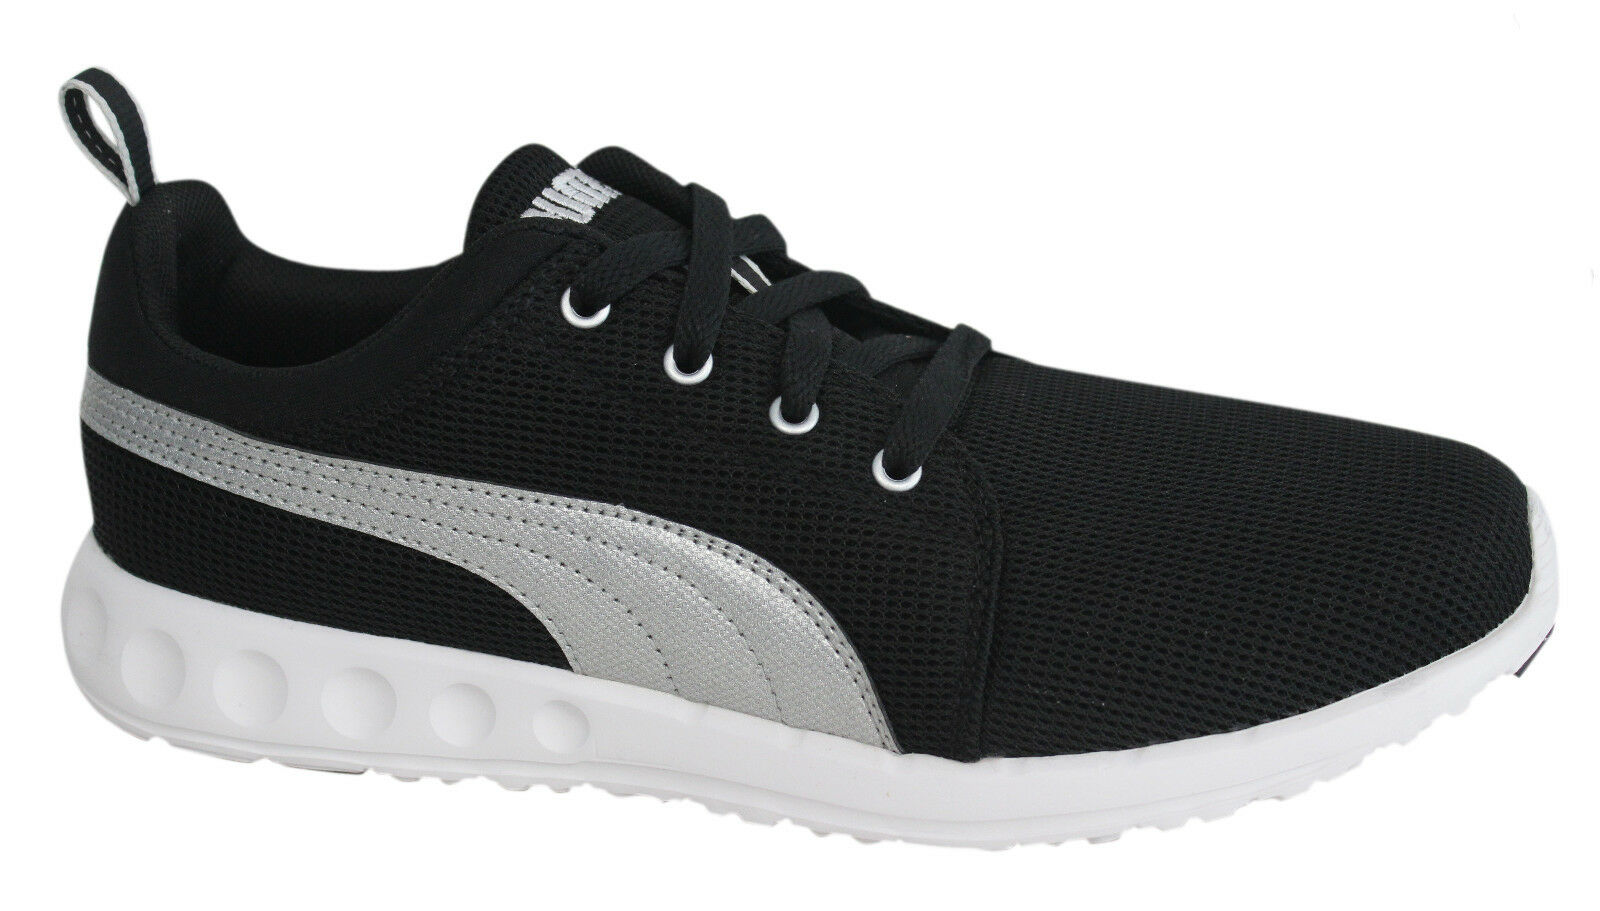 images détaillées 3625f cafa1 Puma Carson Runner Mesh Unisex Trainers Running Shoes Black 357482 03 B36A